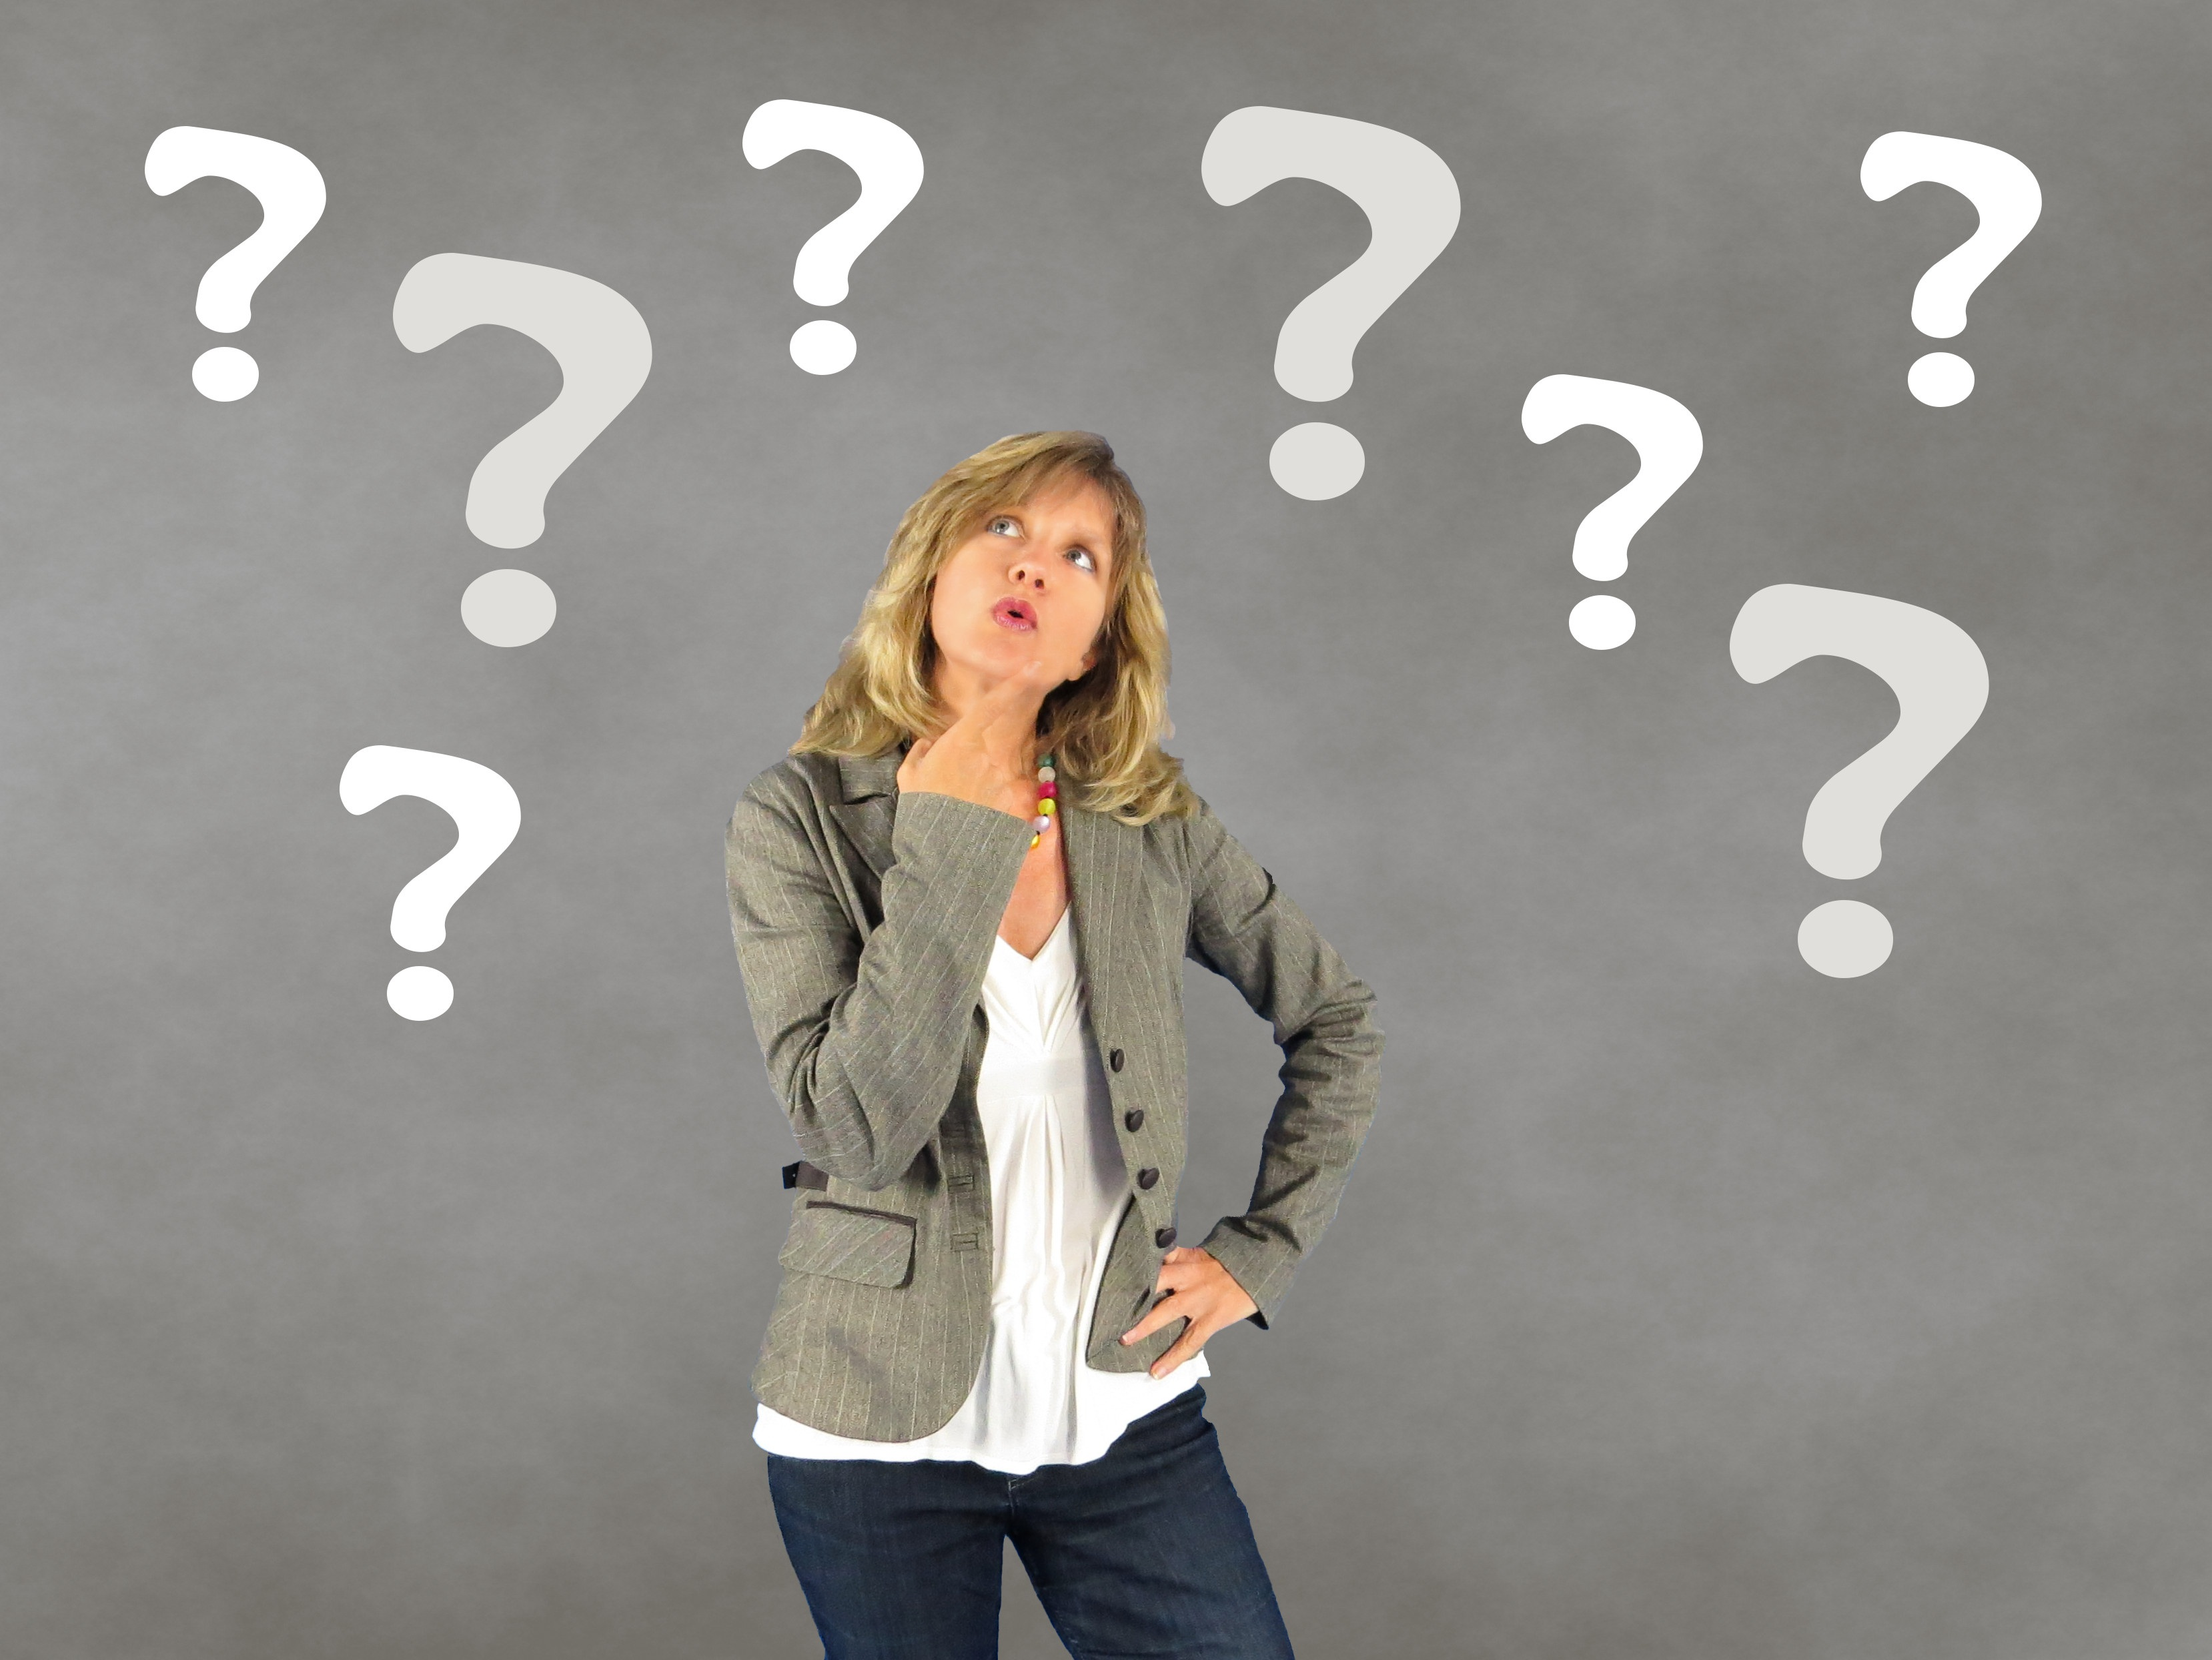 Woman with hand on her chin surrounded by question marks